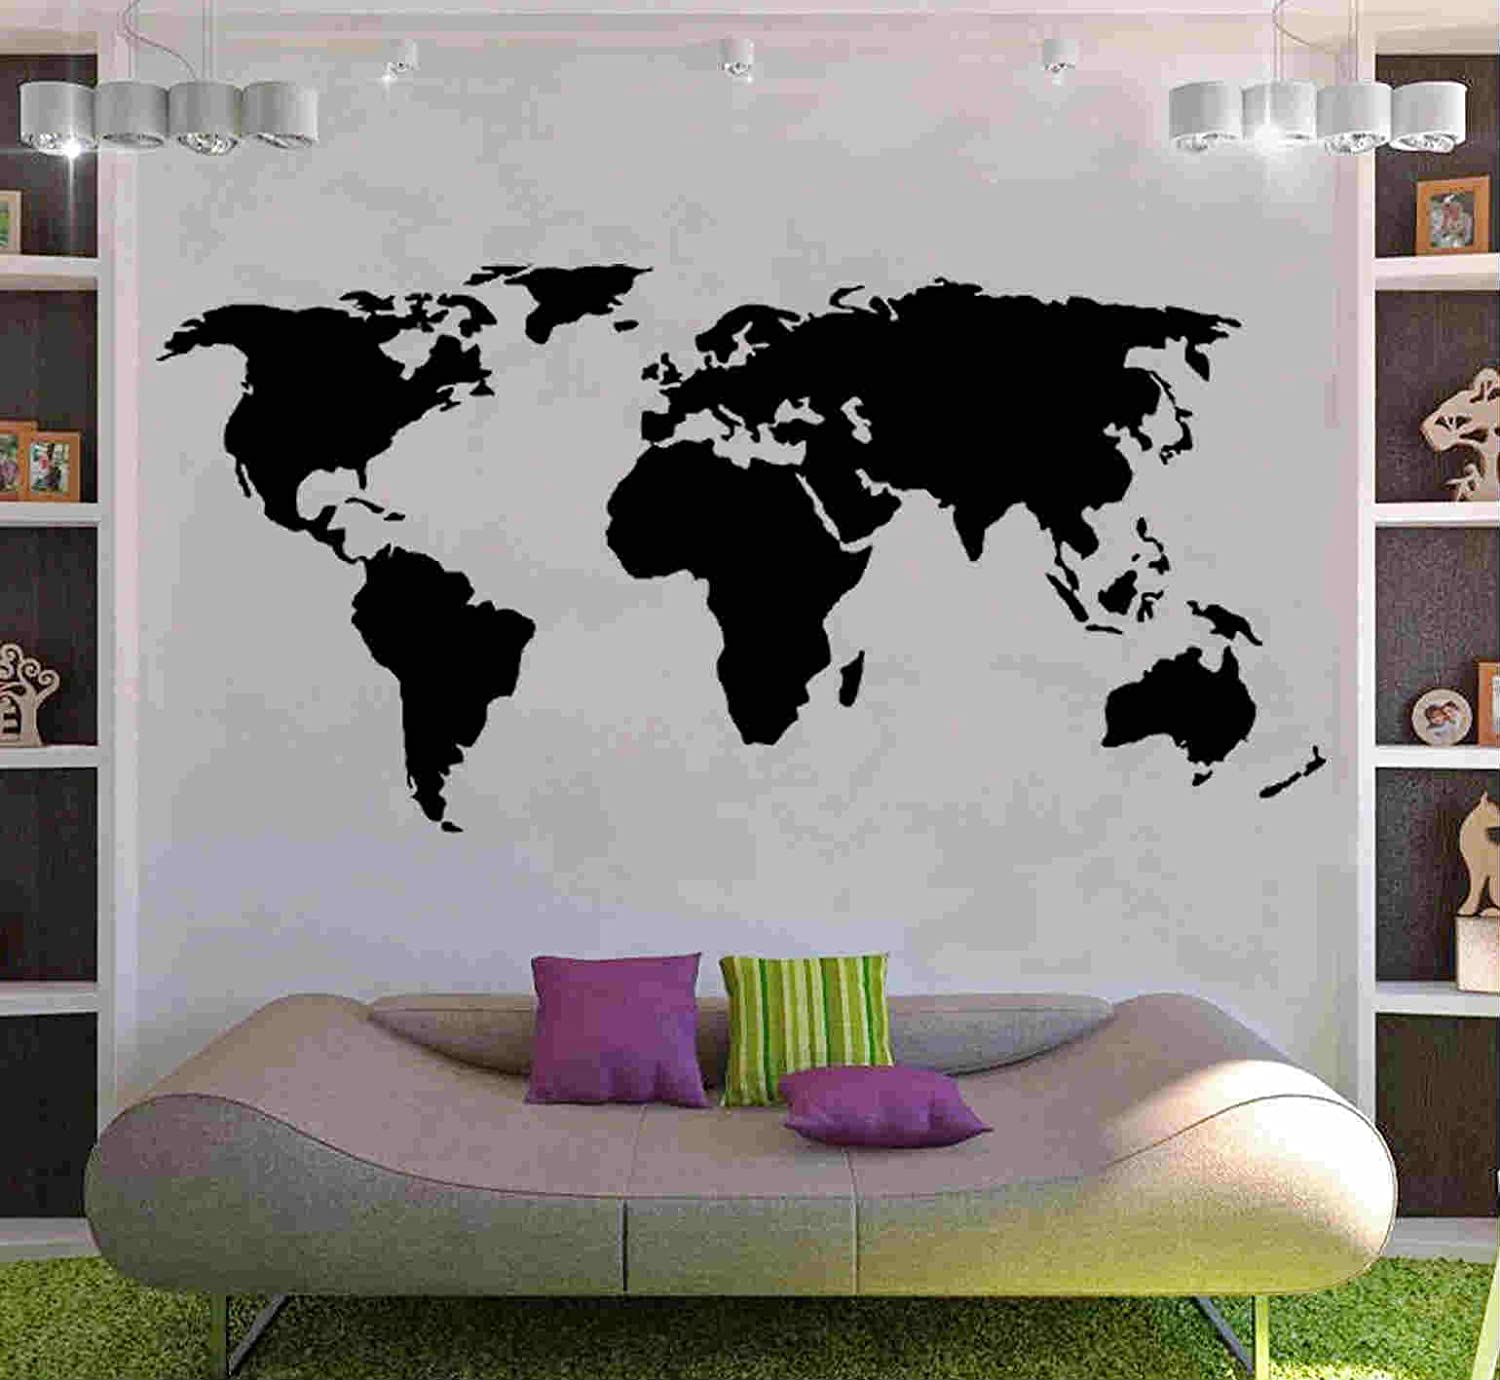 Umbra mappit wall decor magnet board map for tracking travels world map decal wall sticker gumiabroncs Choice Image